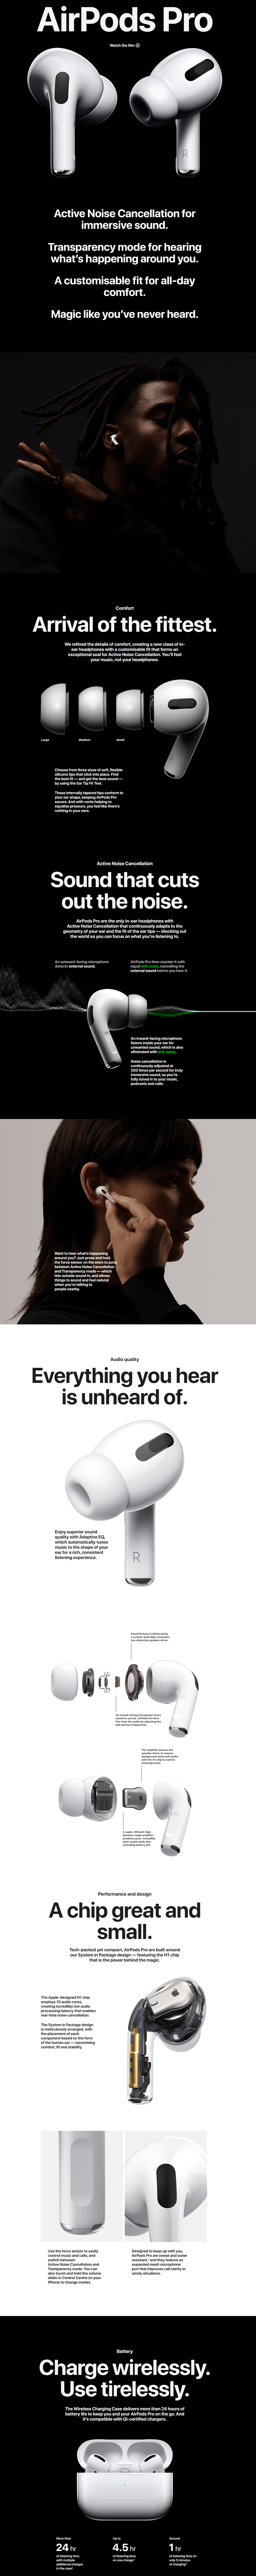 airpods pro pd.png